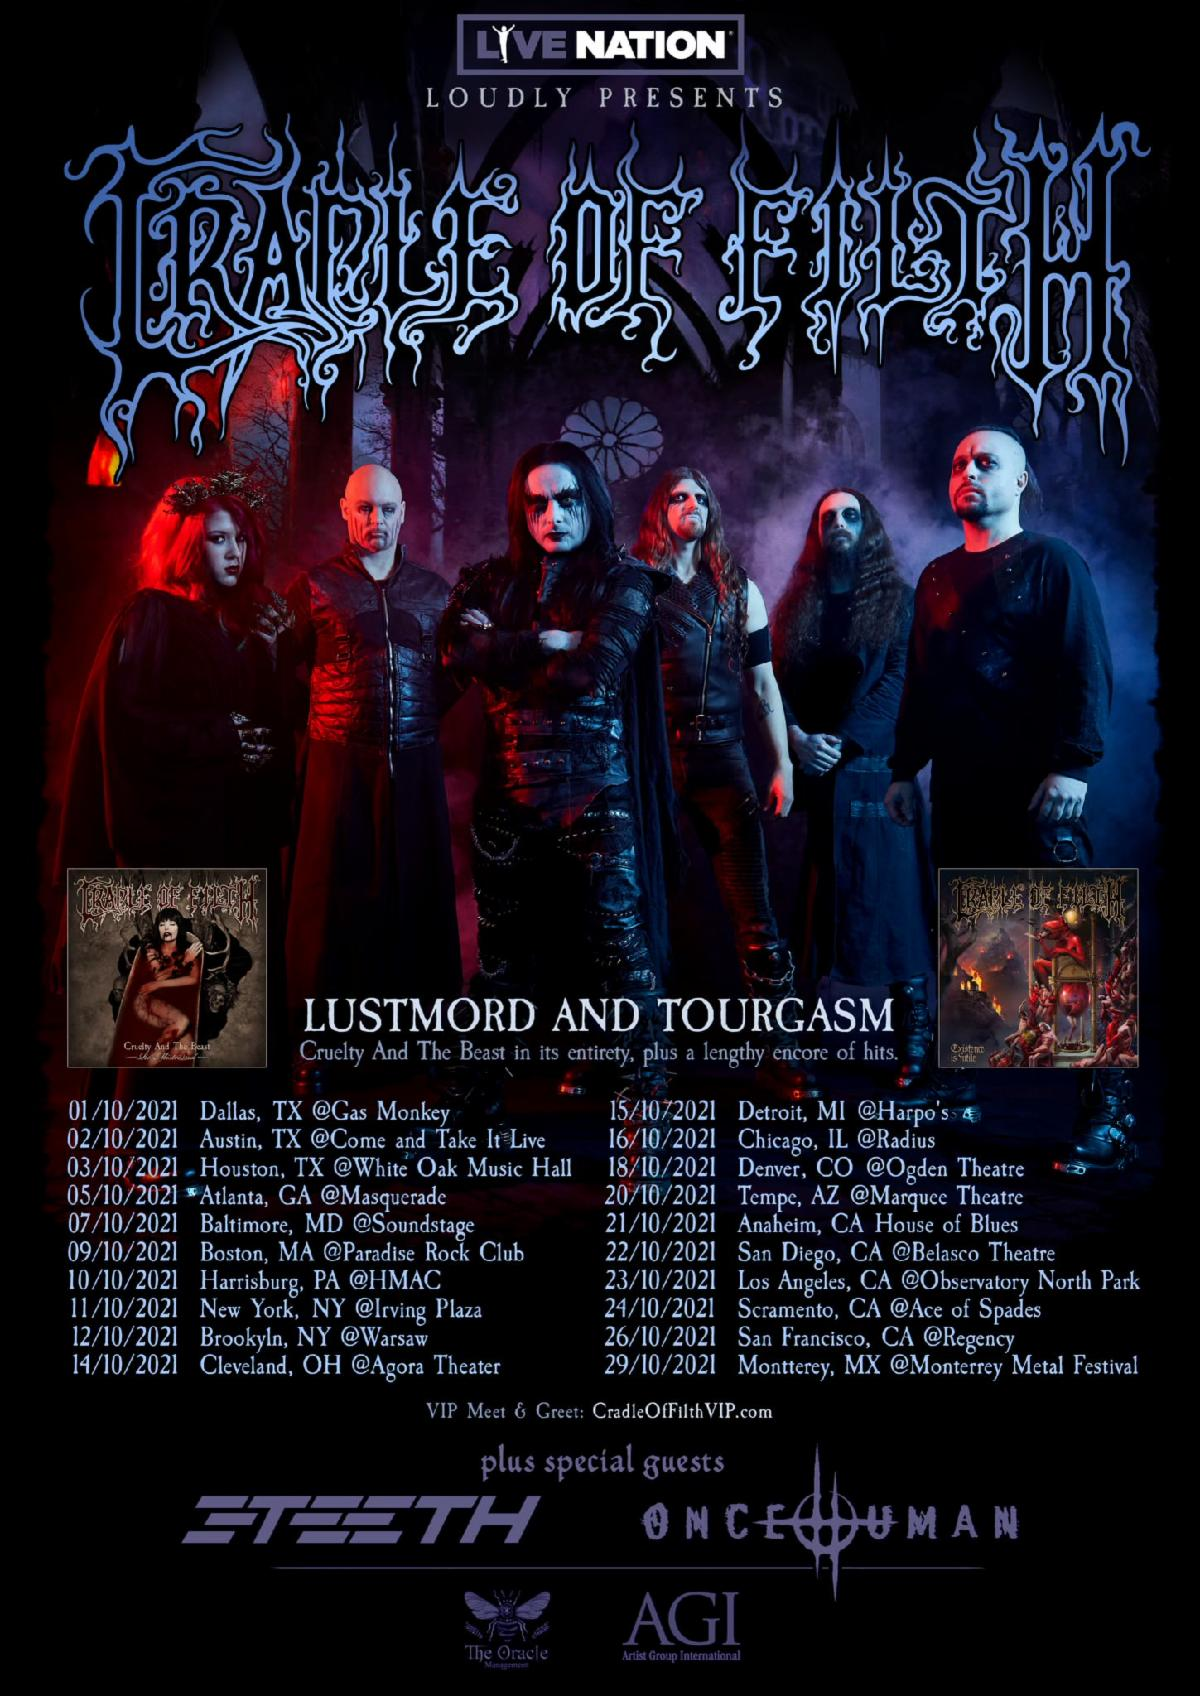 """CRADLE OF FILTH Makes North American Return with 'Lustmord and Tourgasm' Tour, Featuring Full Performance of """"Cruelty and the Beast"""""""